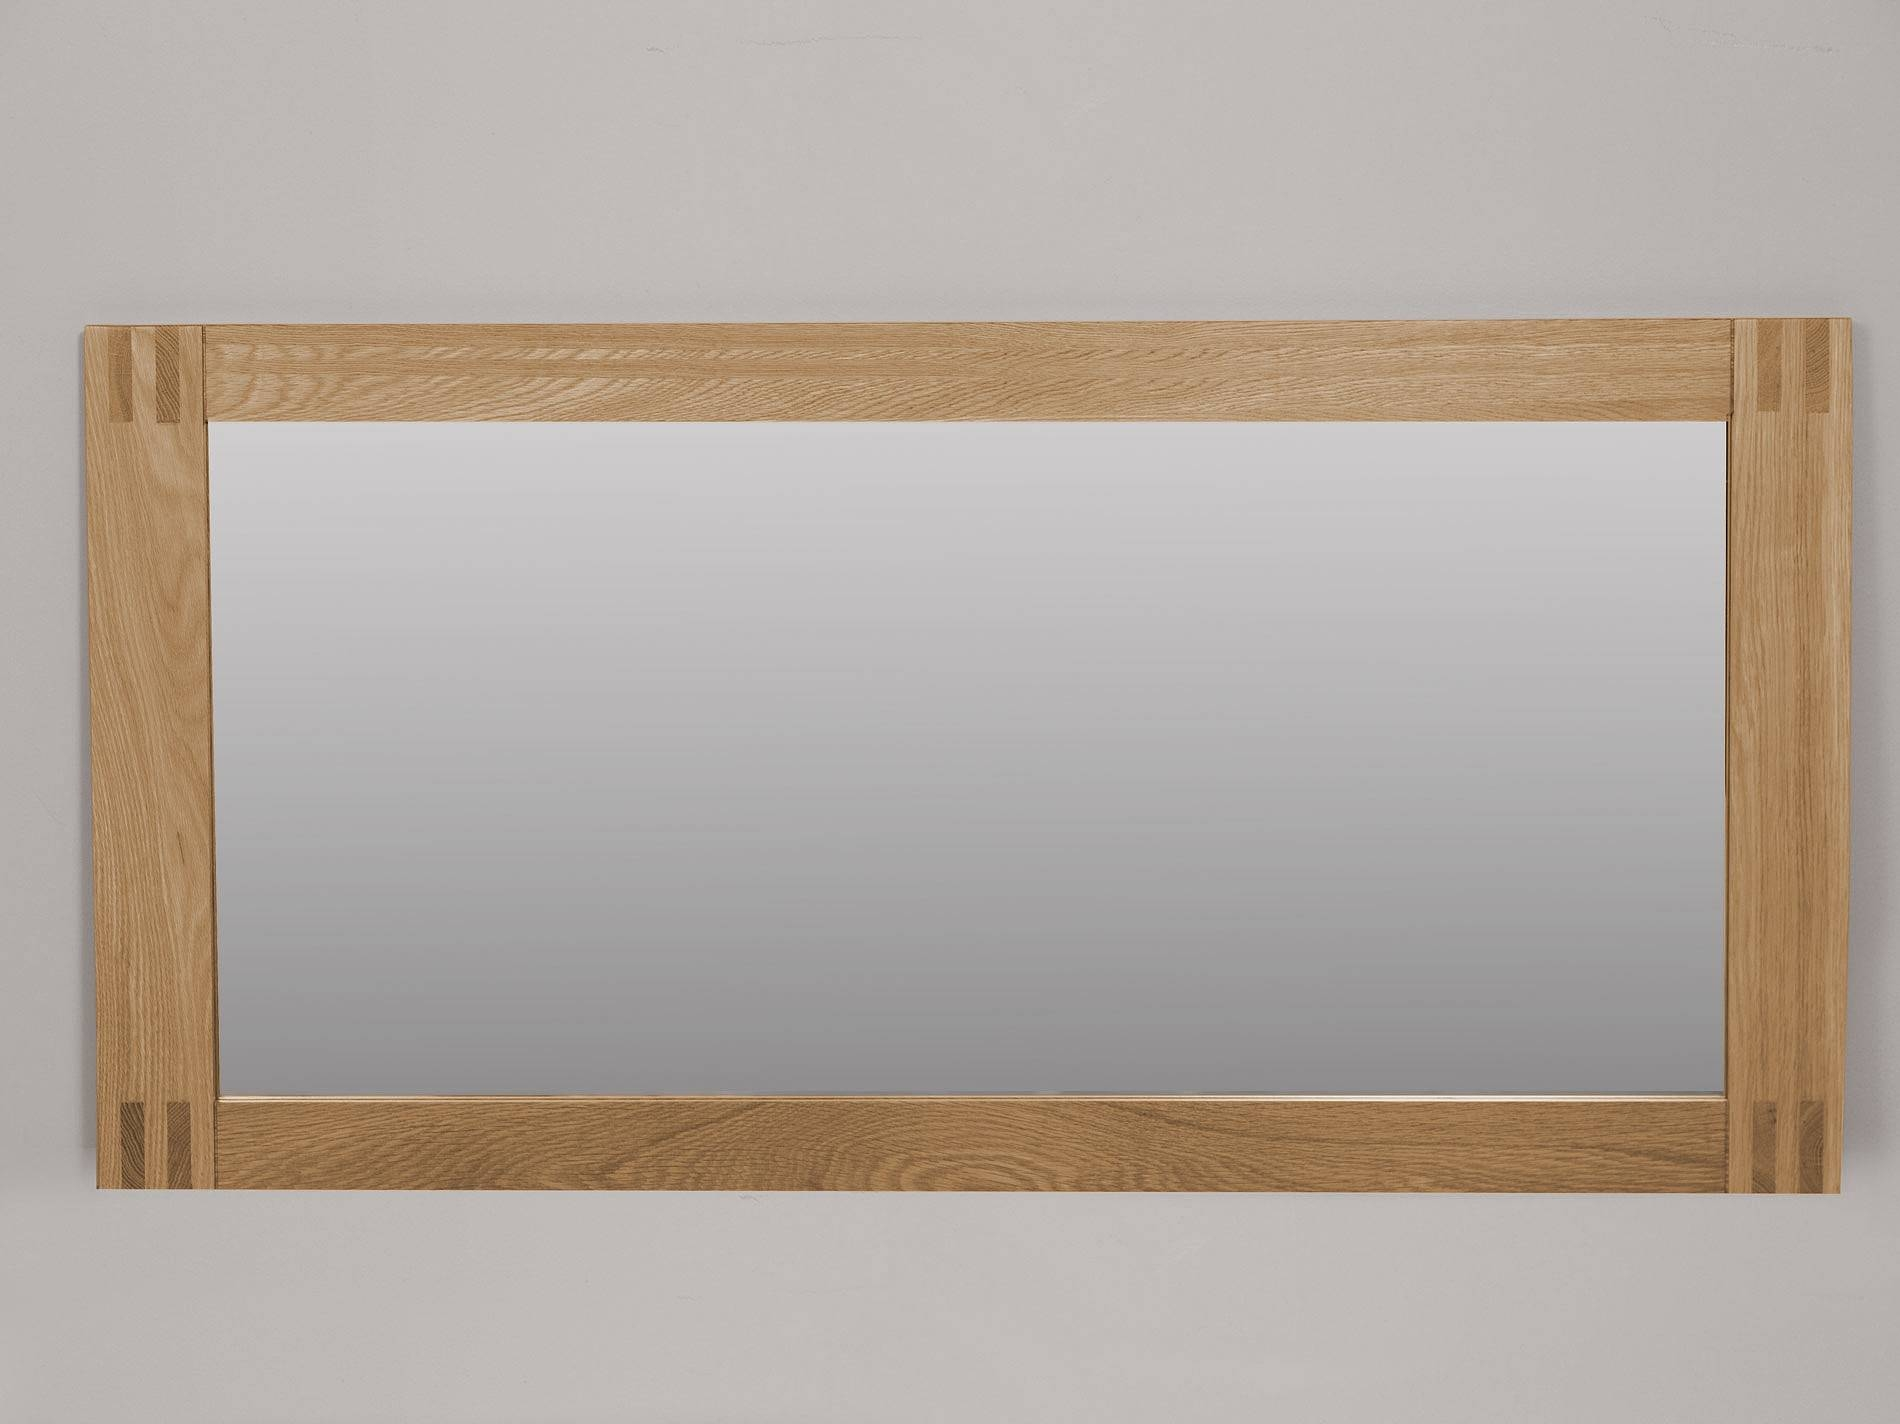 Oak Mirror Images - Reverse Search throughout Large Oak Mirrors (Image 18 of 25)